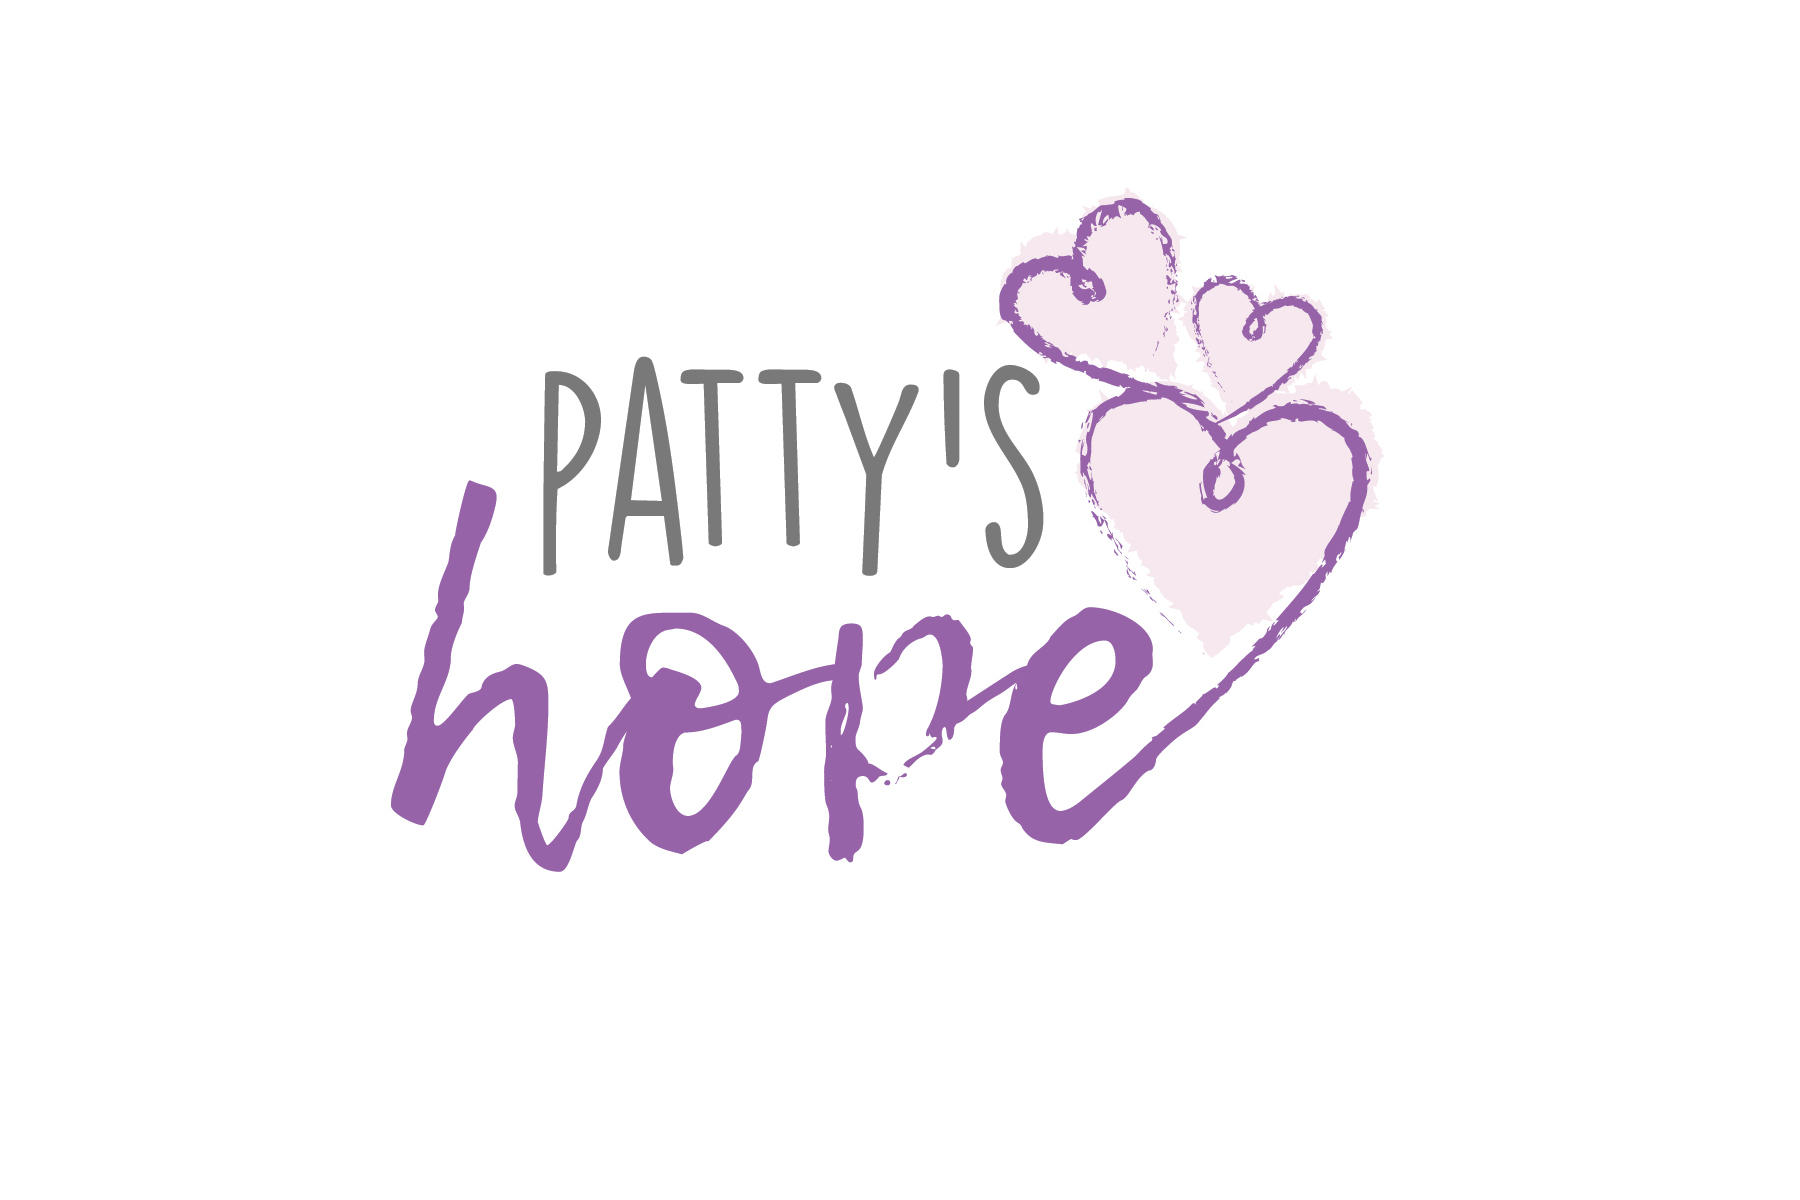 Patty's Hope Visiting This Sunday - This Sunday Patty's Hope will be visiting with us to tell us about their work in RVA with mothers of children in foster care.